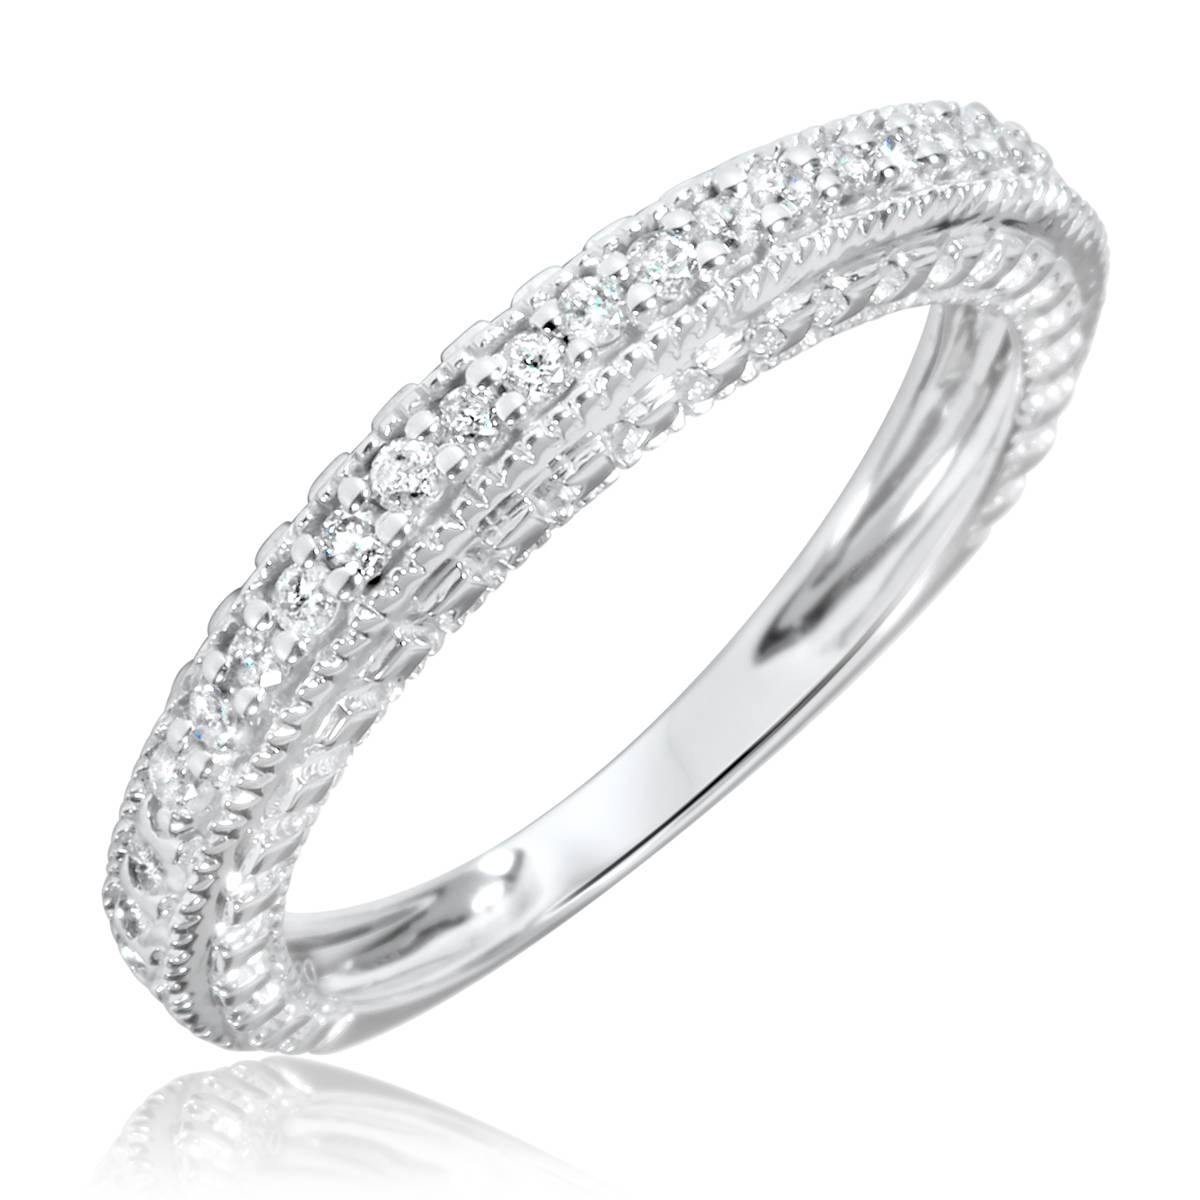 1 Carat Diamond Trio Wedding Ring Set 14K White Gold Inside 14K White Gold Wedding Rings (View 2 of 15)